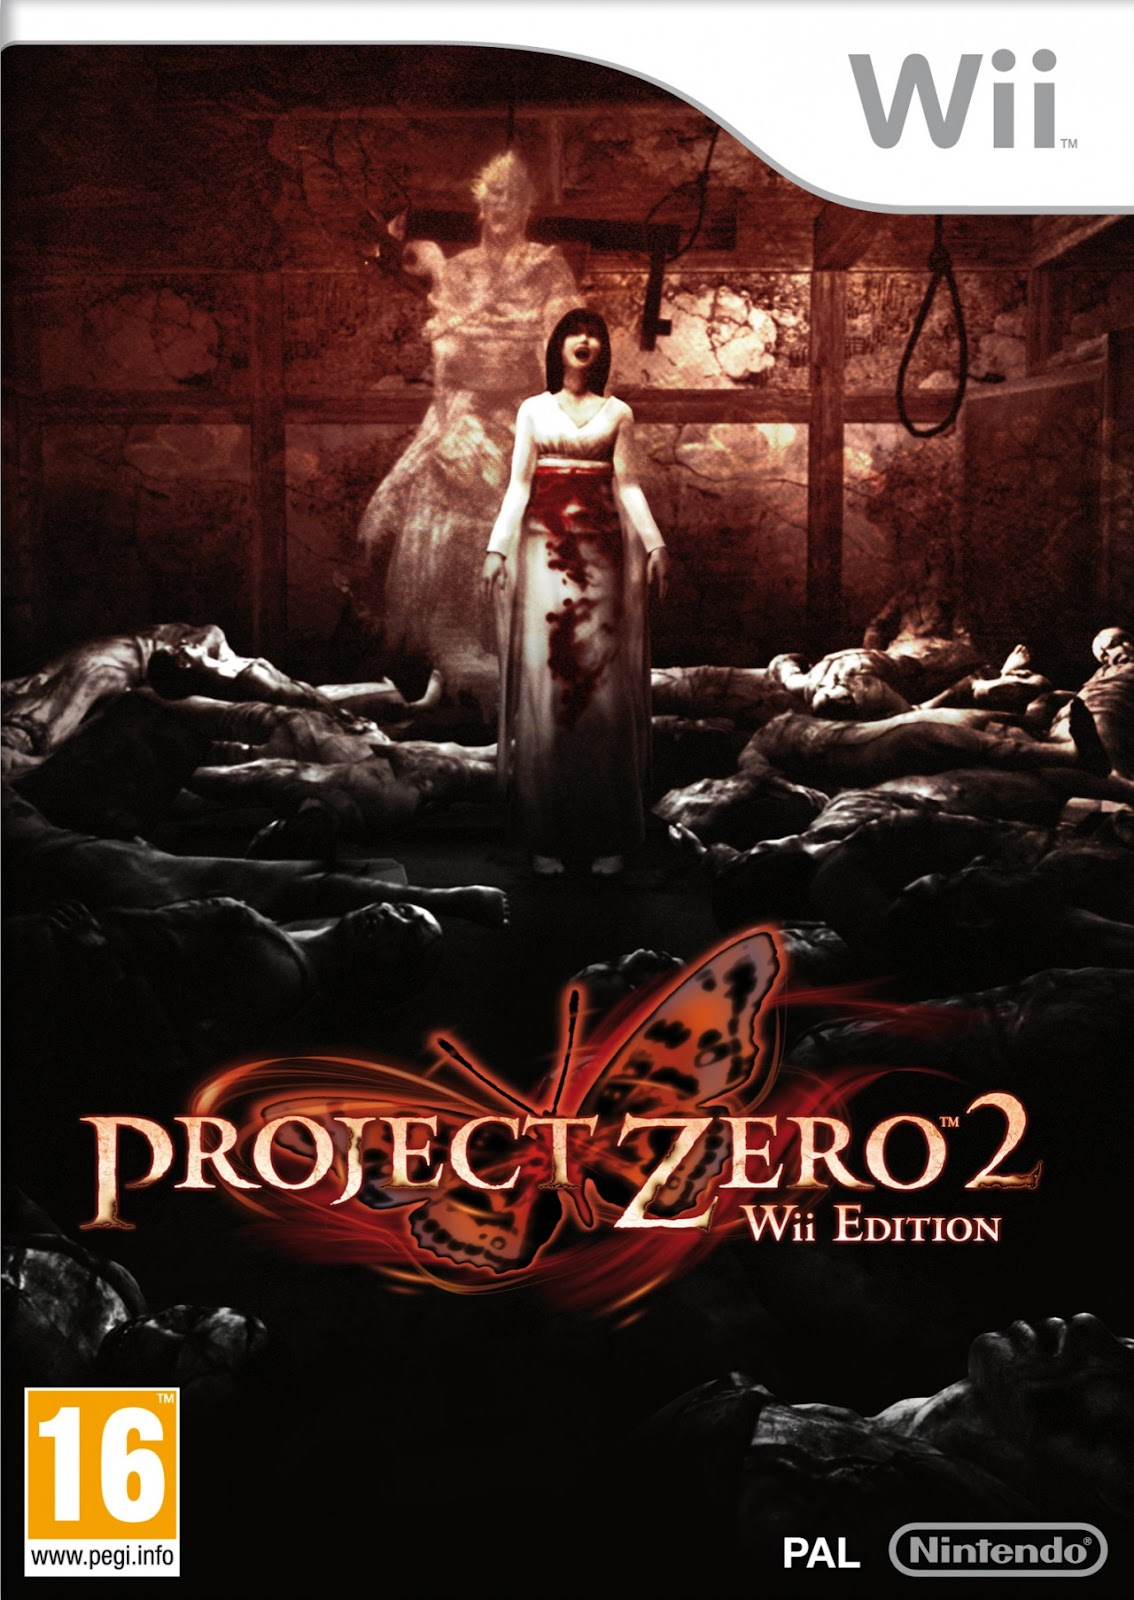 Image result for project zero ii crimson butterfly wii